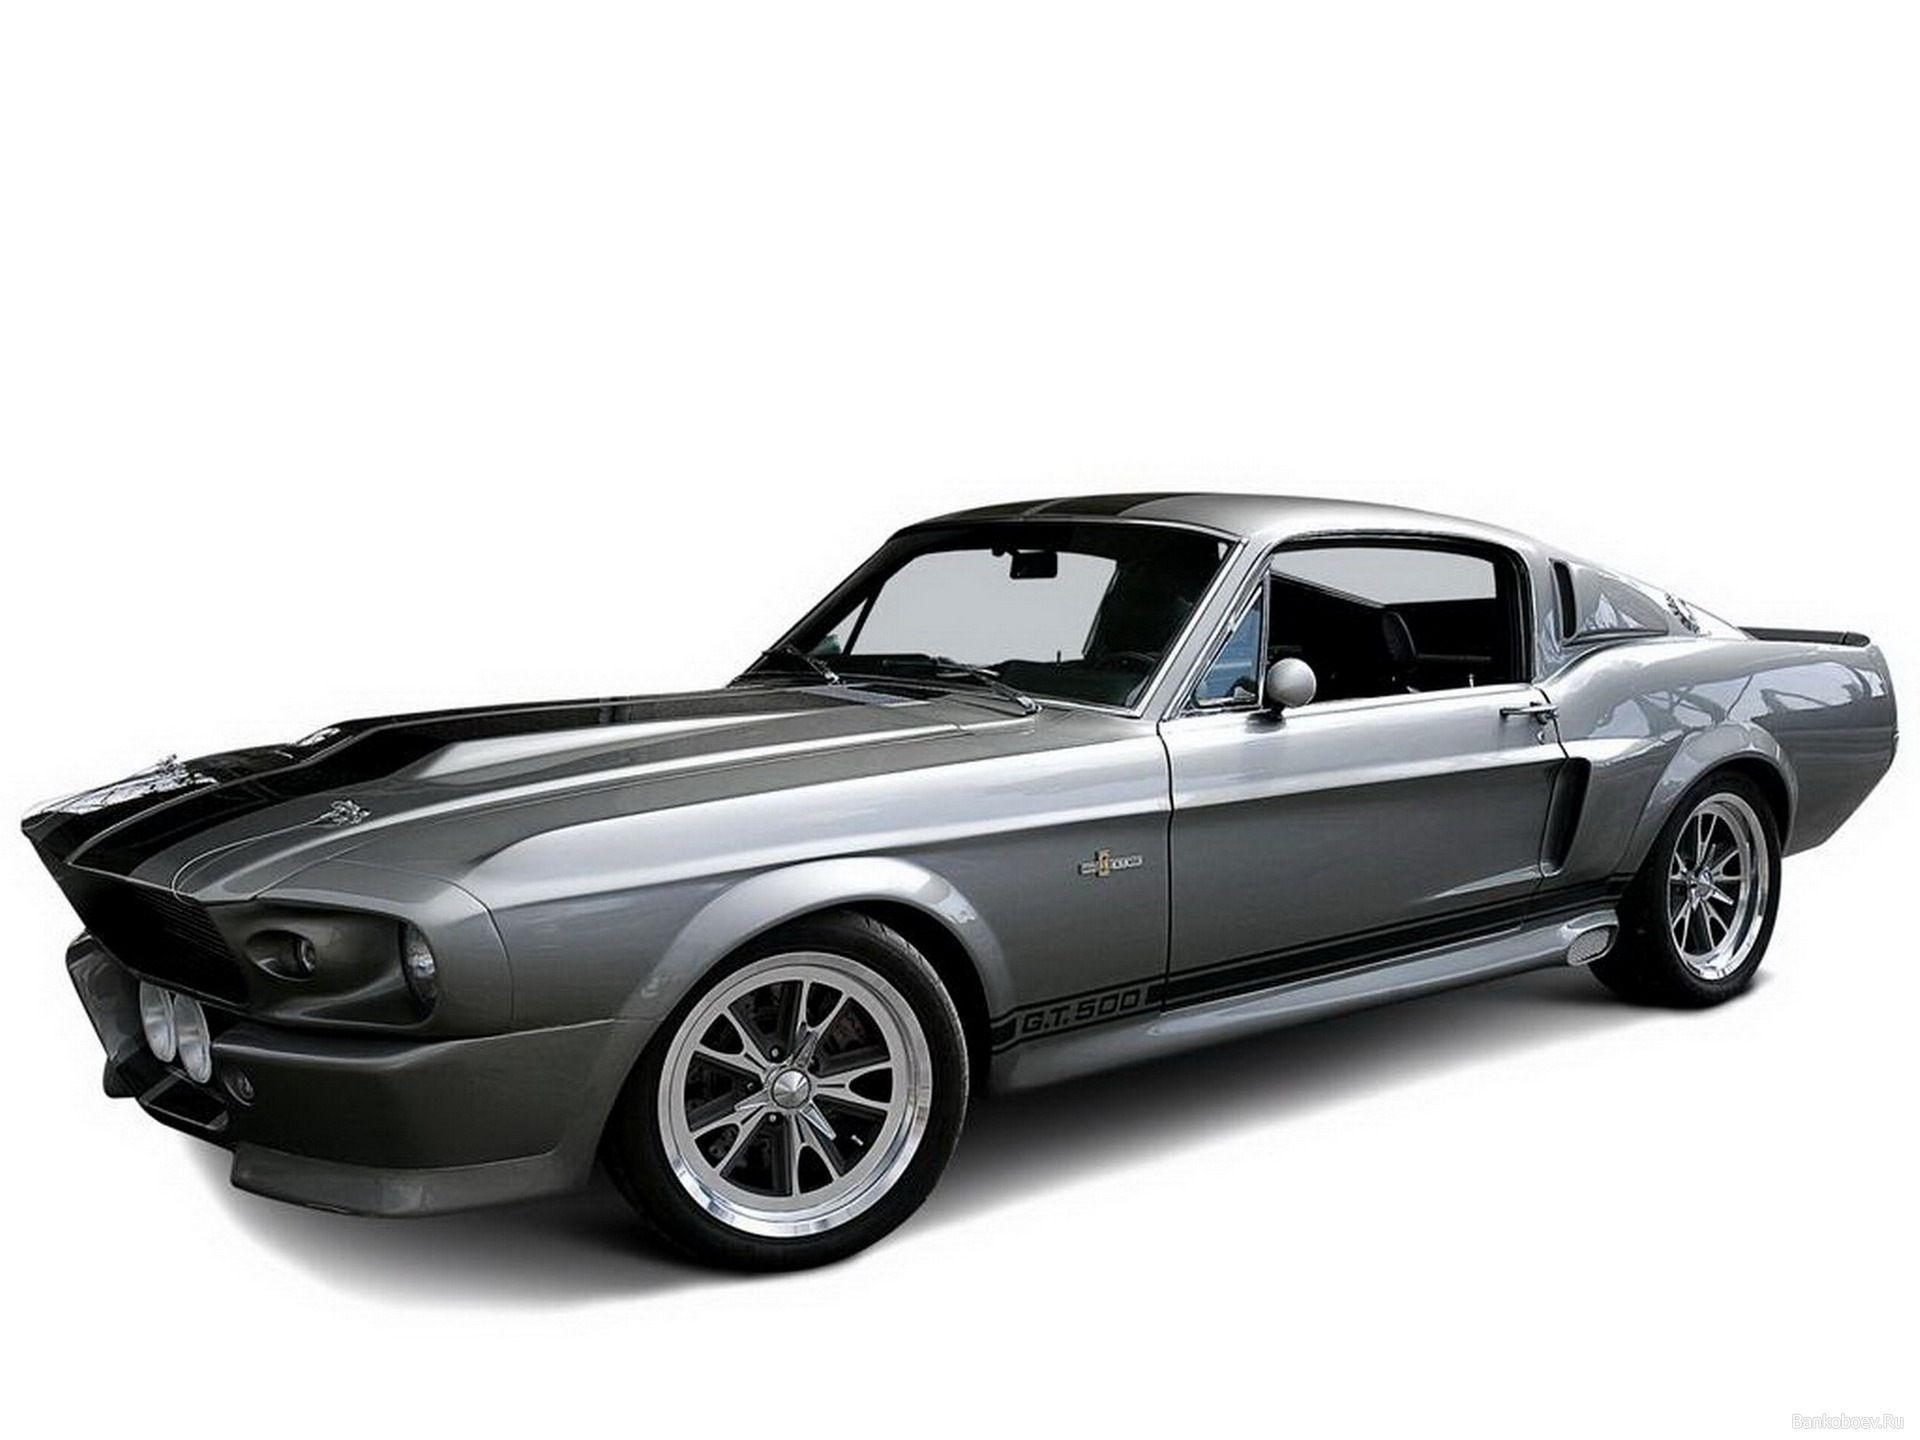 1967 Ford Mustang Shelby Gt500 Wallpapers